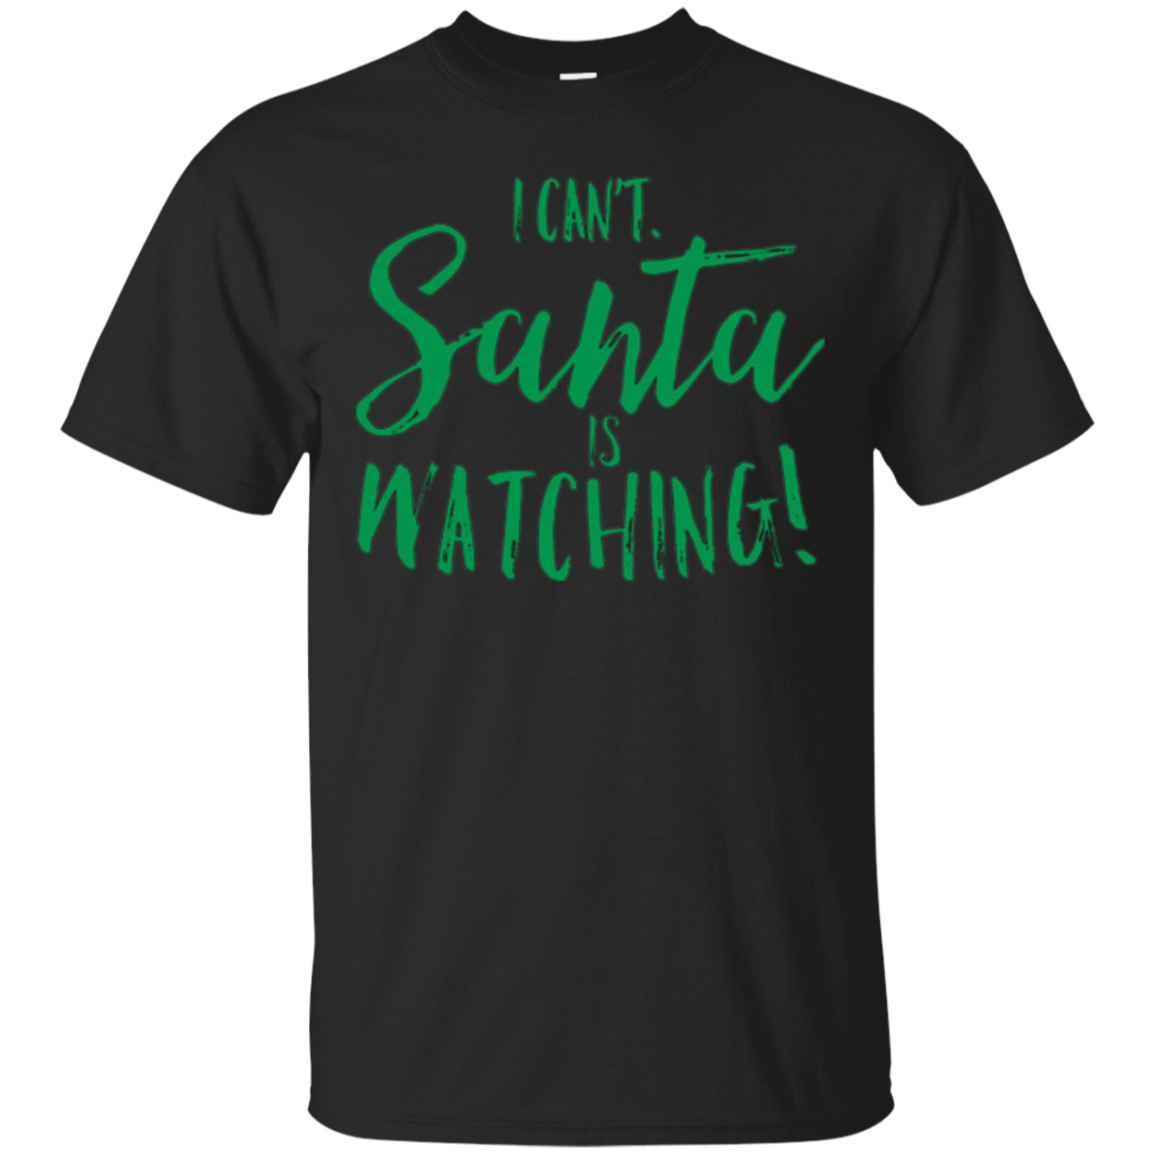 I Can't, Santa is Watching Funny Claus Christmas Party Shirt